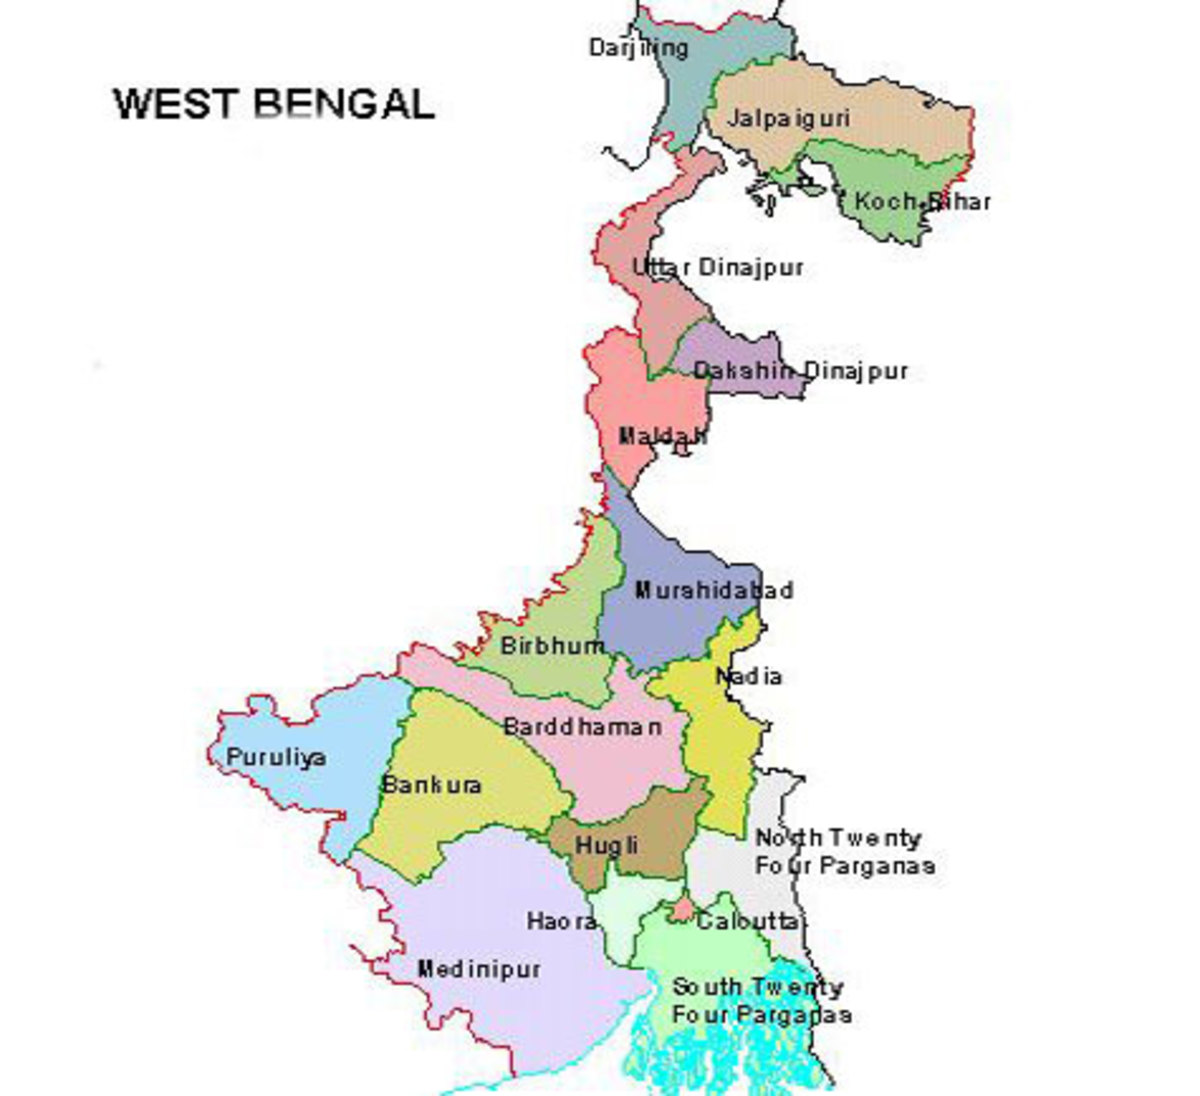 West Bengal (to India)